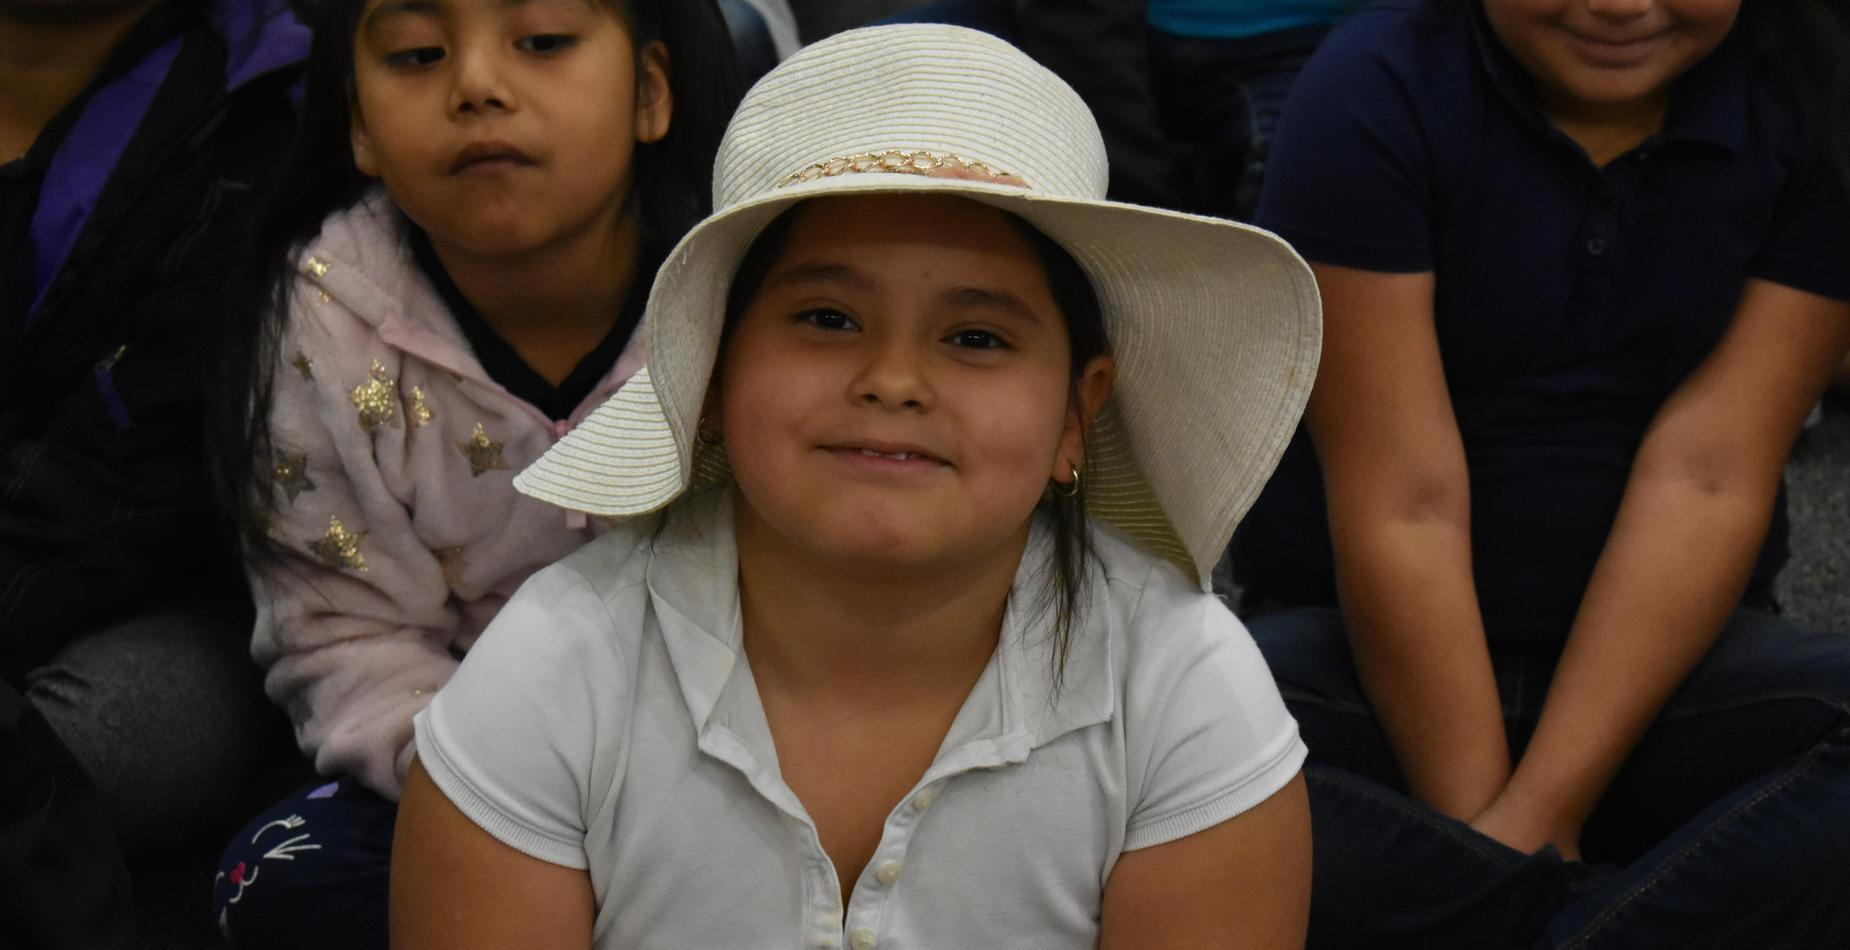 A little girl wearing a white floppy hat for hat day.